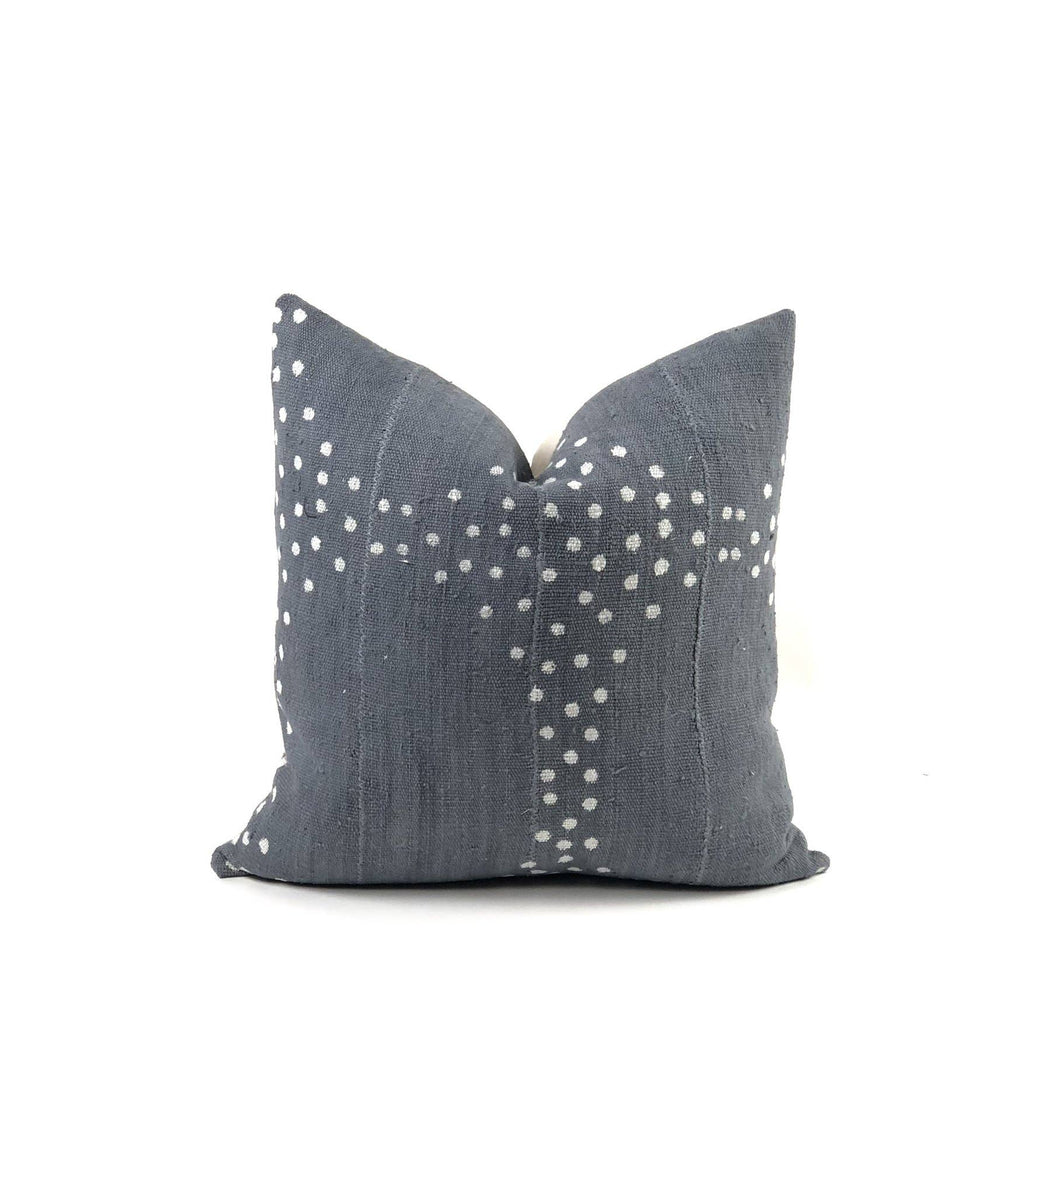 Bryar Wolf - Ekon Pillow